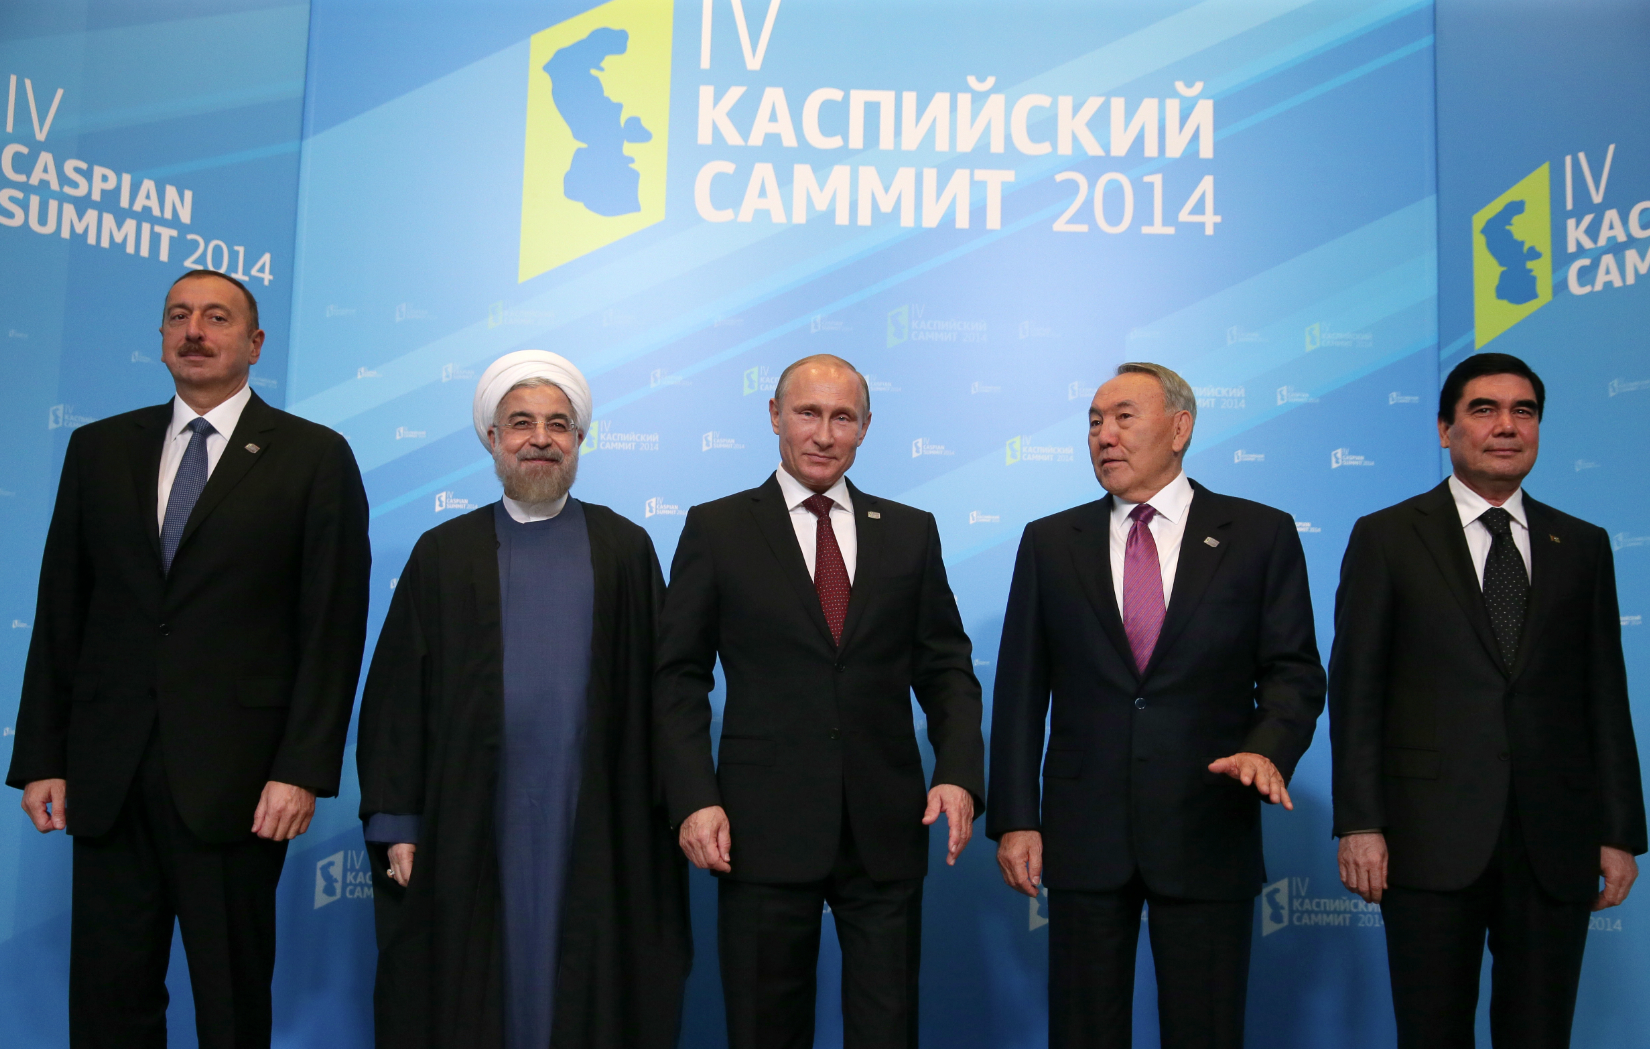 The tripartite meeting between Putin, Aliyev and Rouhani may occur in August.